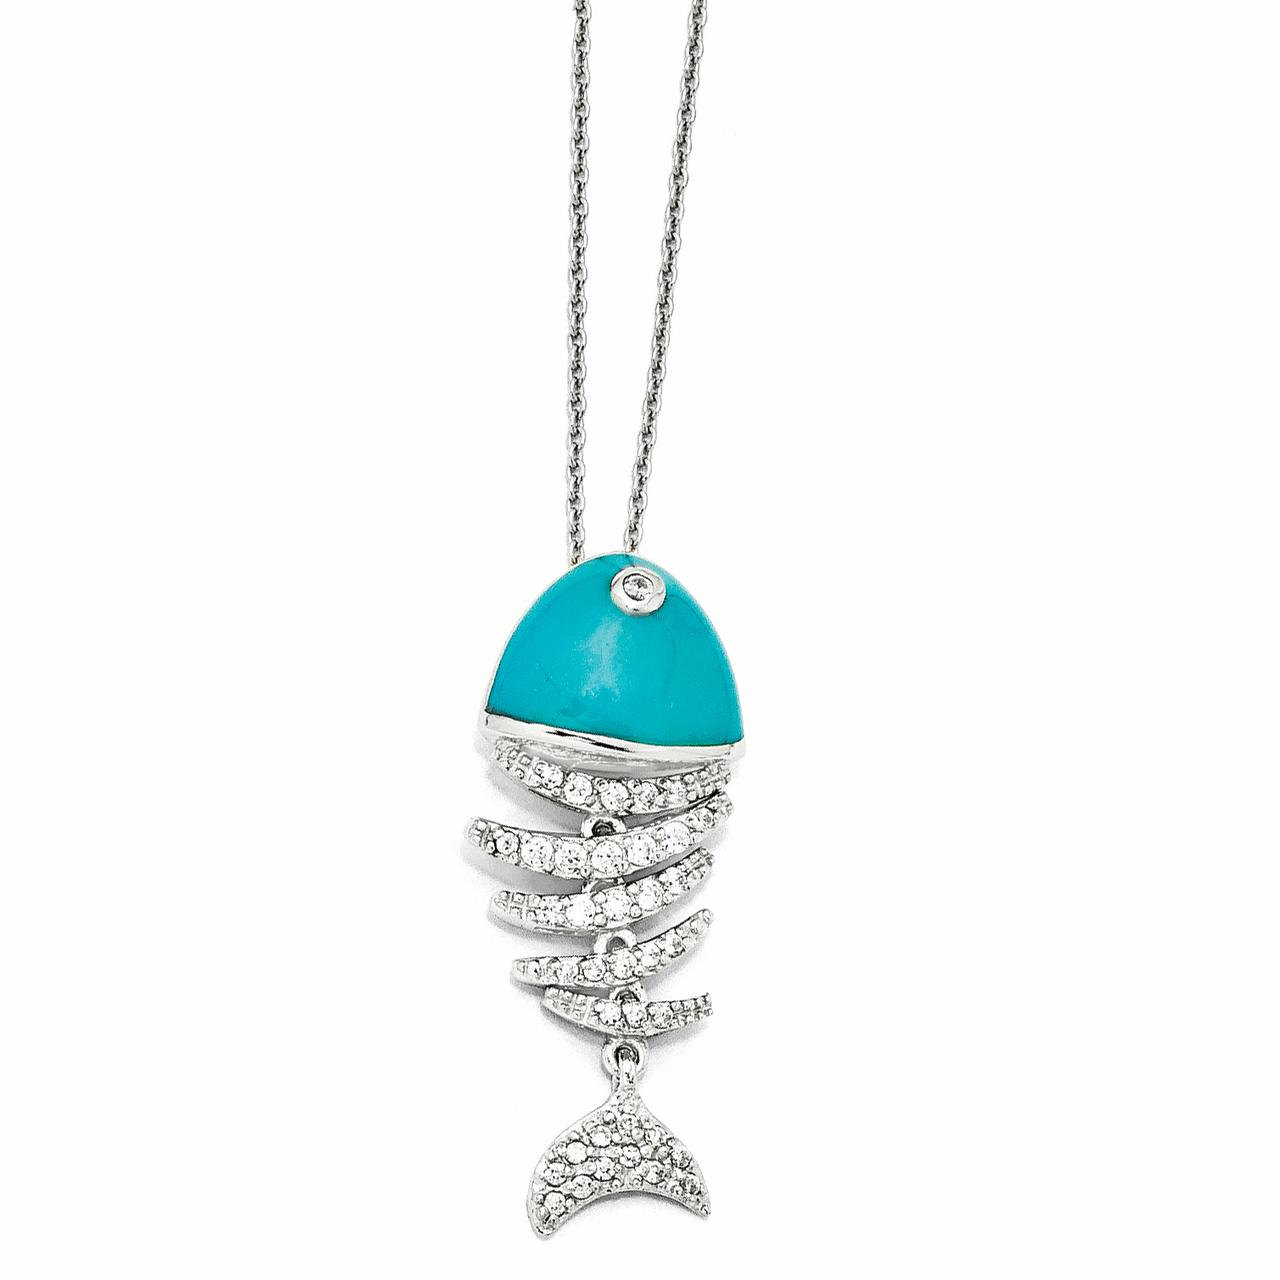 Cheryl M Sterling Silver Turquoise Enameled Cubic Zirconia Fish 18in Necklace by Best Price Product